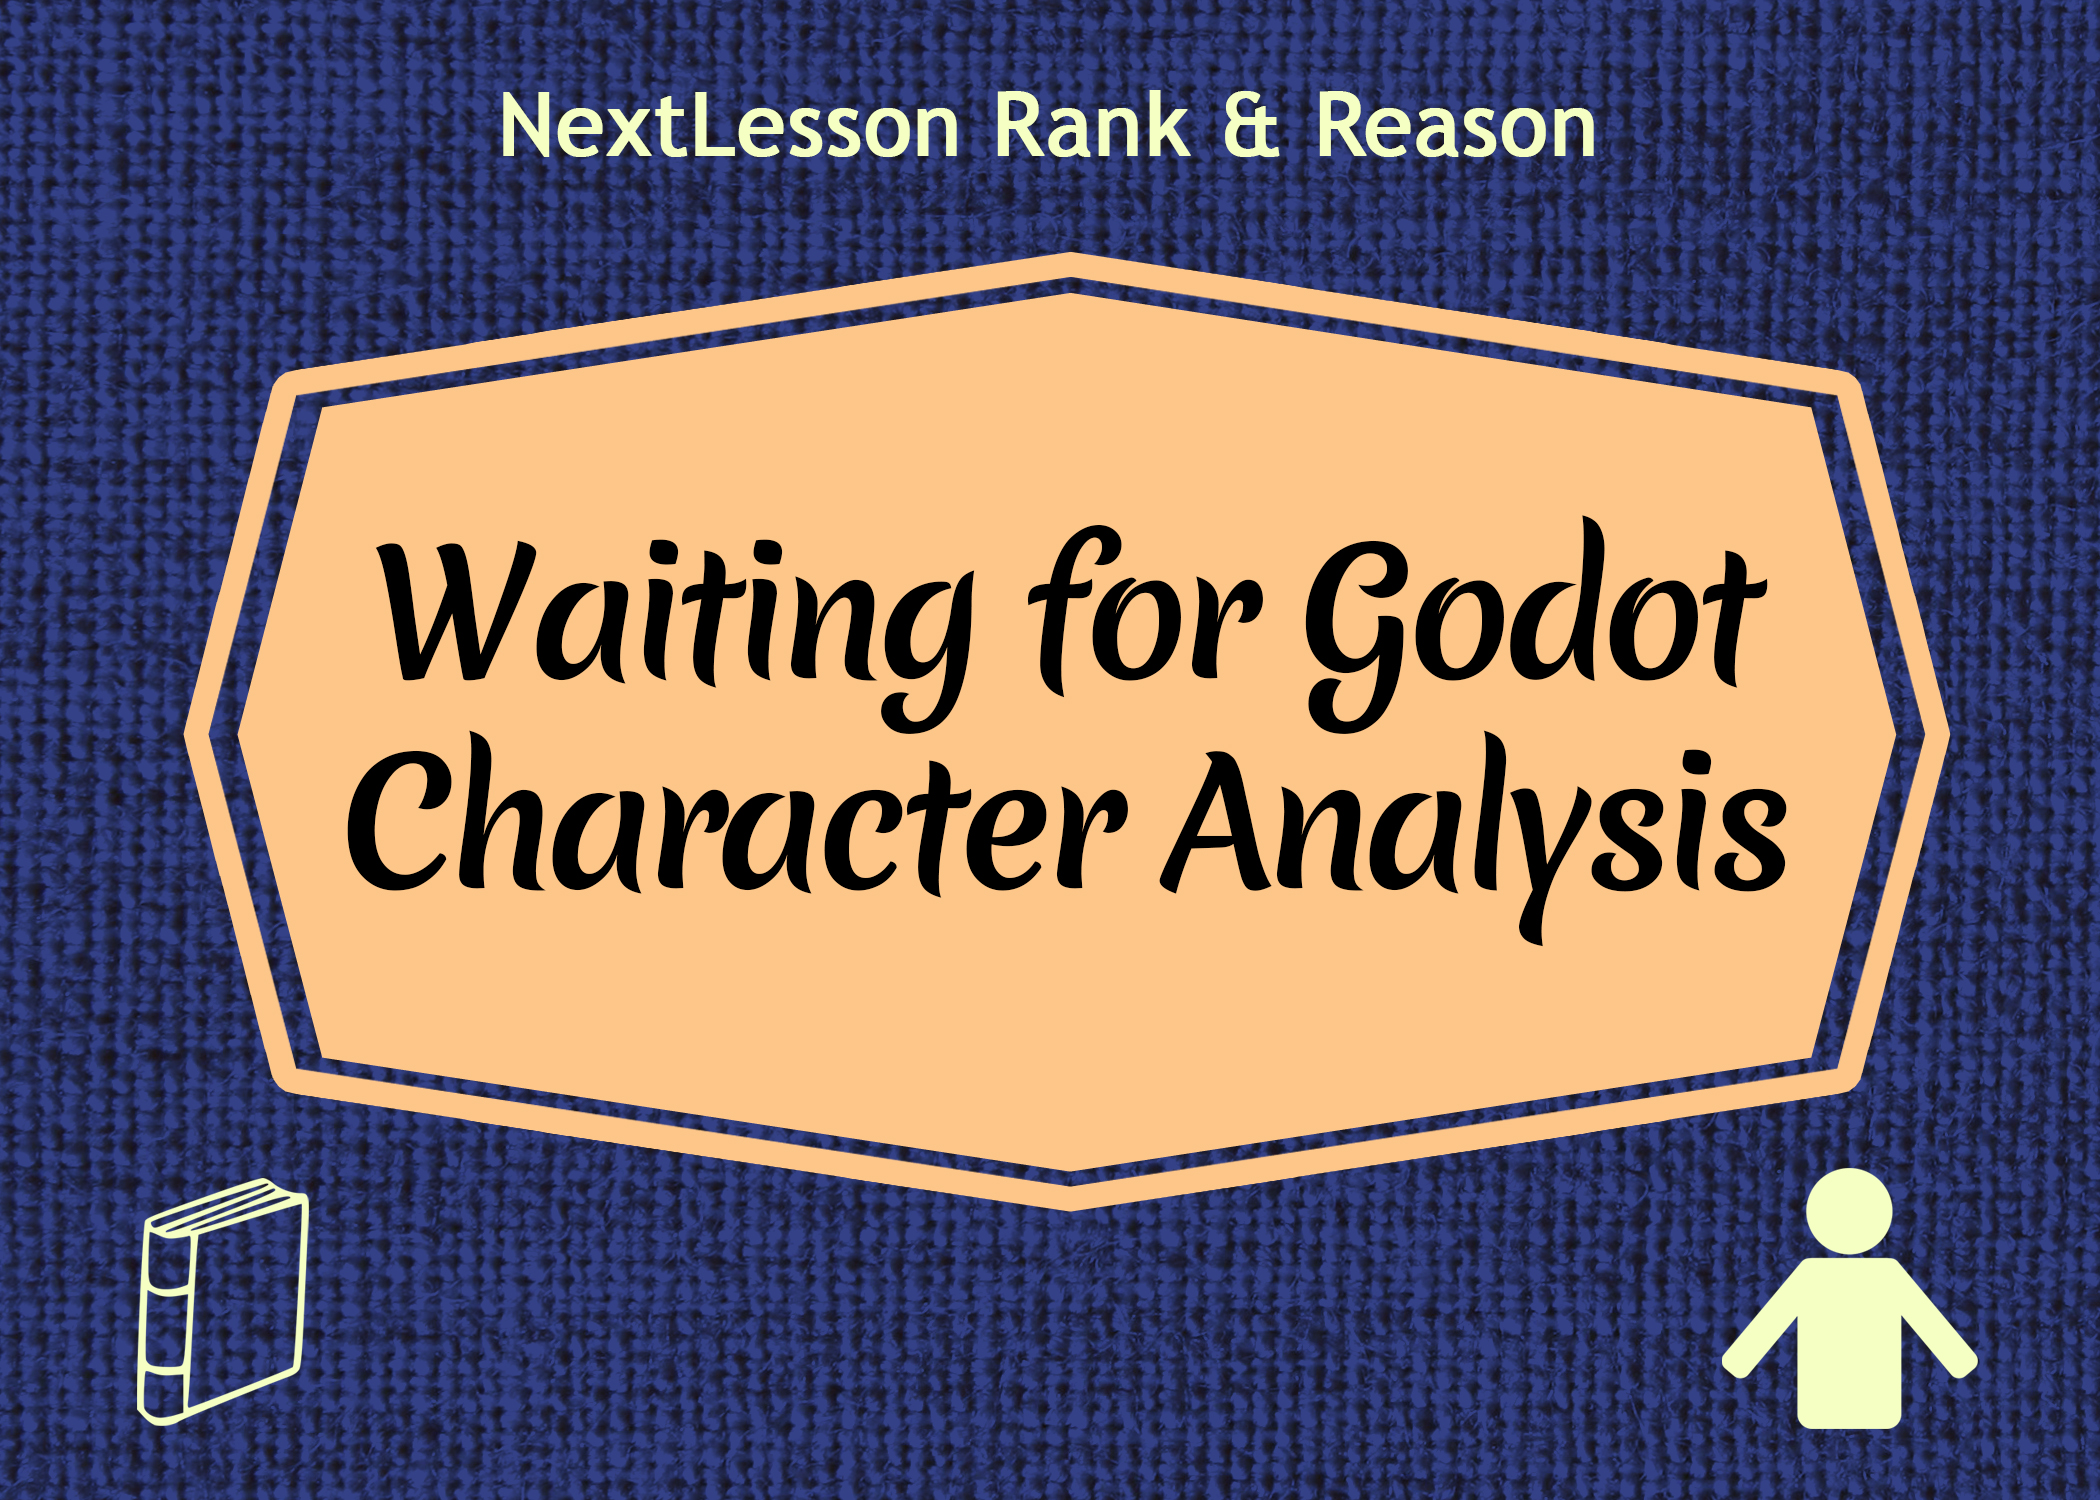 the metamorphosis and waiting for godot analysis Free essays from bartleby | introduction in waiting for godot by samuel beckett,  the underlying themes of this play encompass the absurdity of existence and.